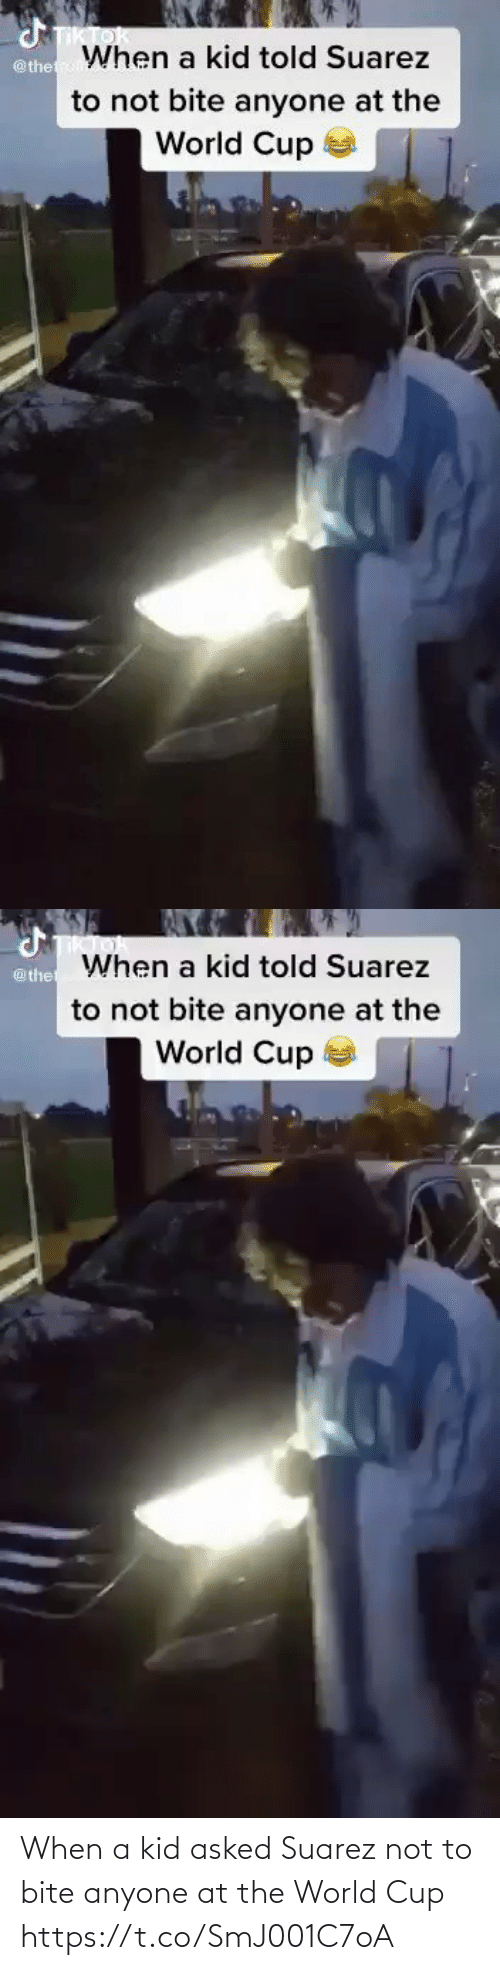 World Cup: When a kid asked Suarez not to bite anyone at the World Cup  https://t.co/SmJ001C7oA